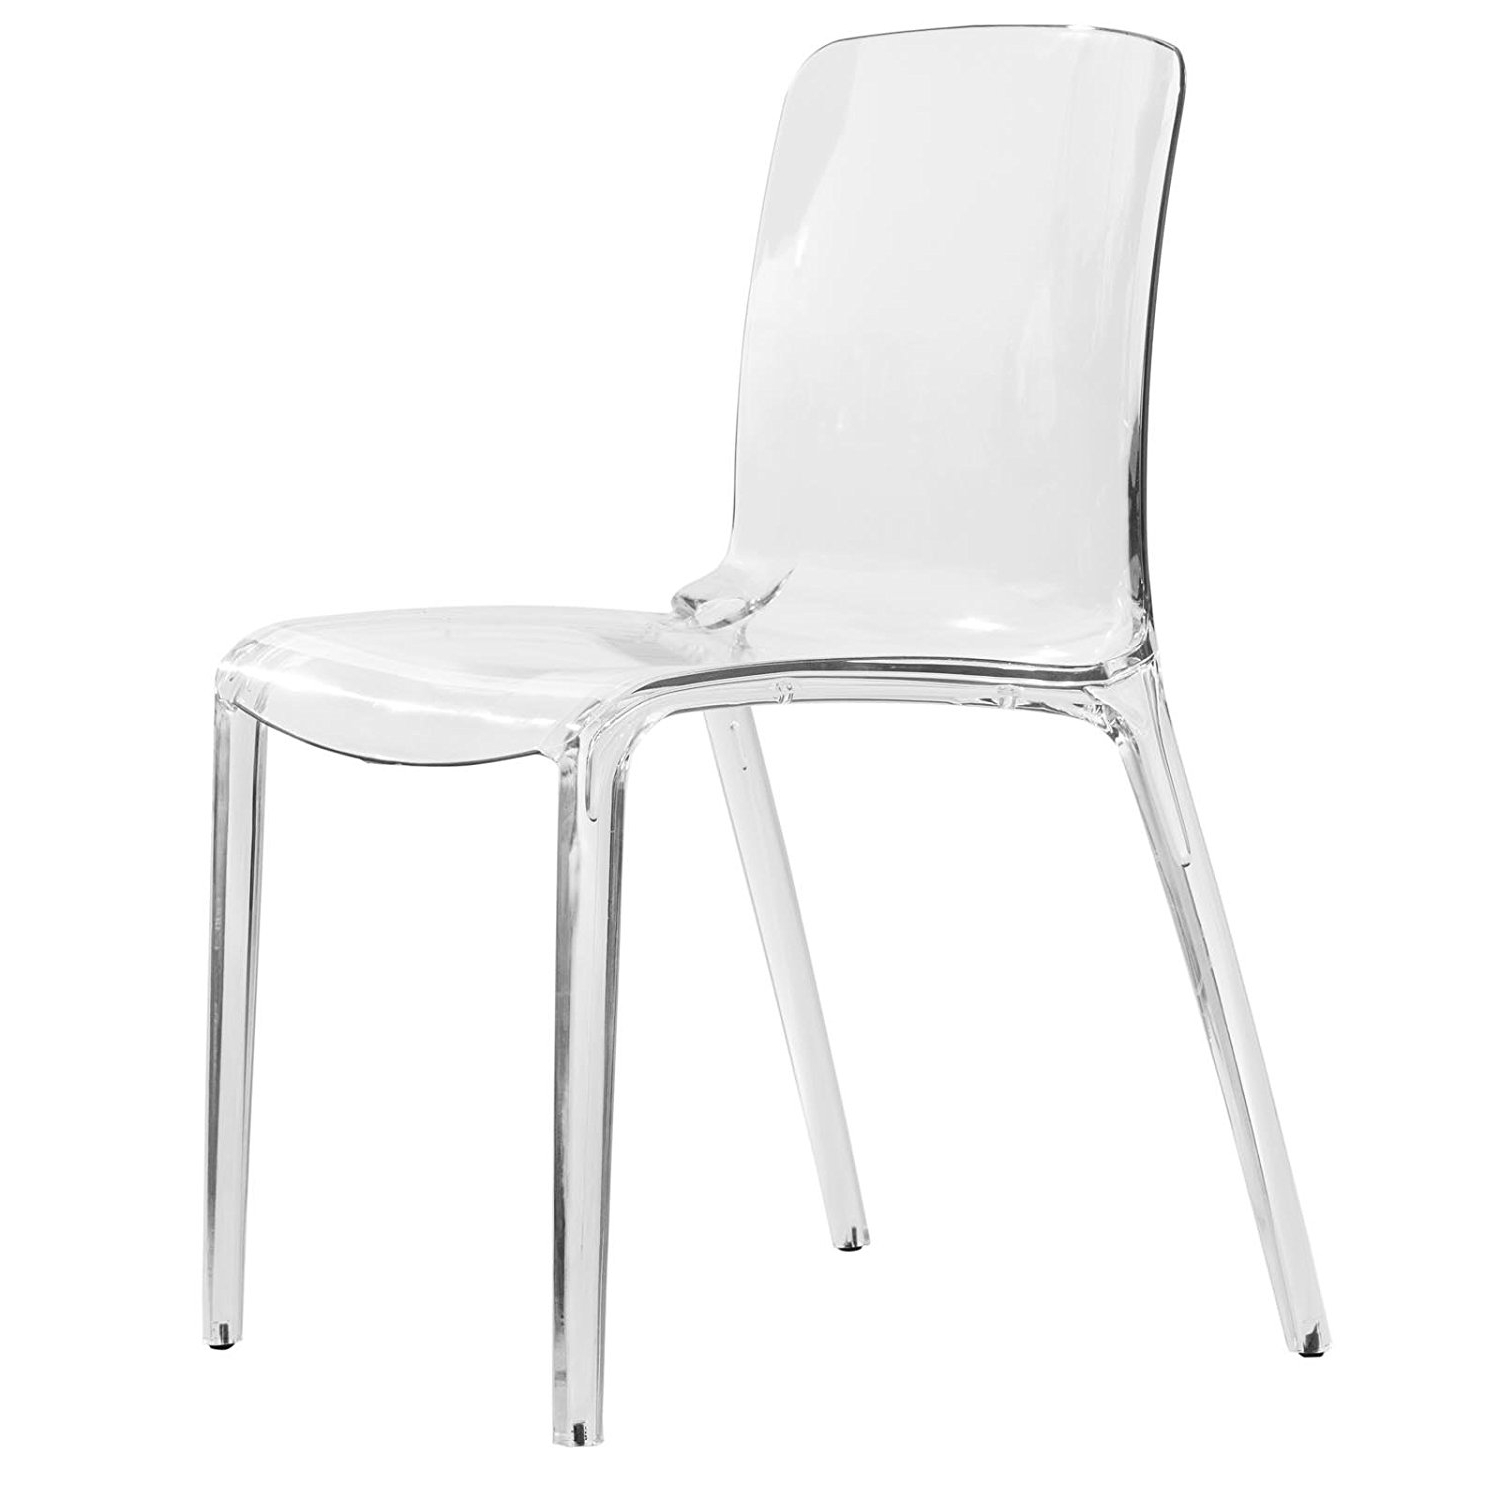 Burton Metal Side Chairs With Wooden Seat For Best And Newest Amazon – Leisuremod Murray Modern Dining Chair, Clear – Chairs (View 5 of 20)